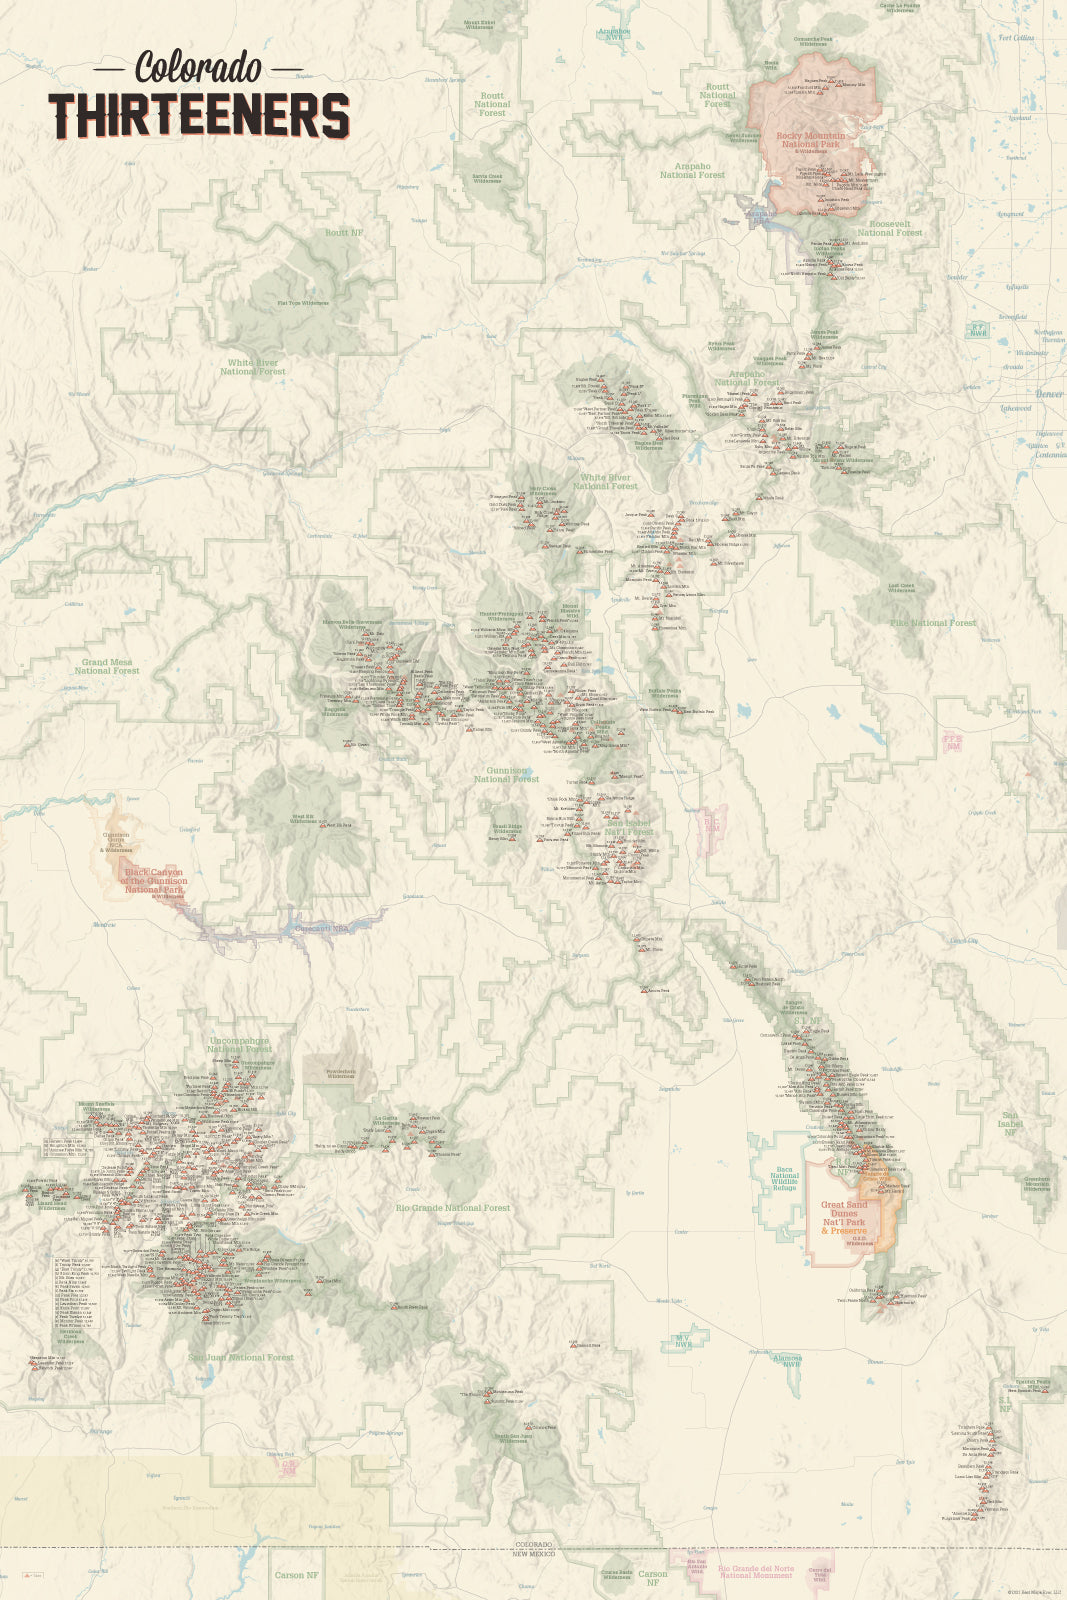 Colorado 13ers Map Poster - tan